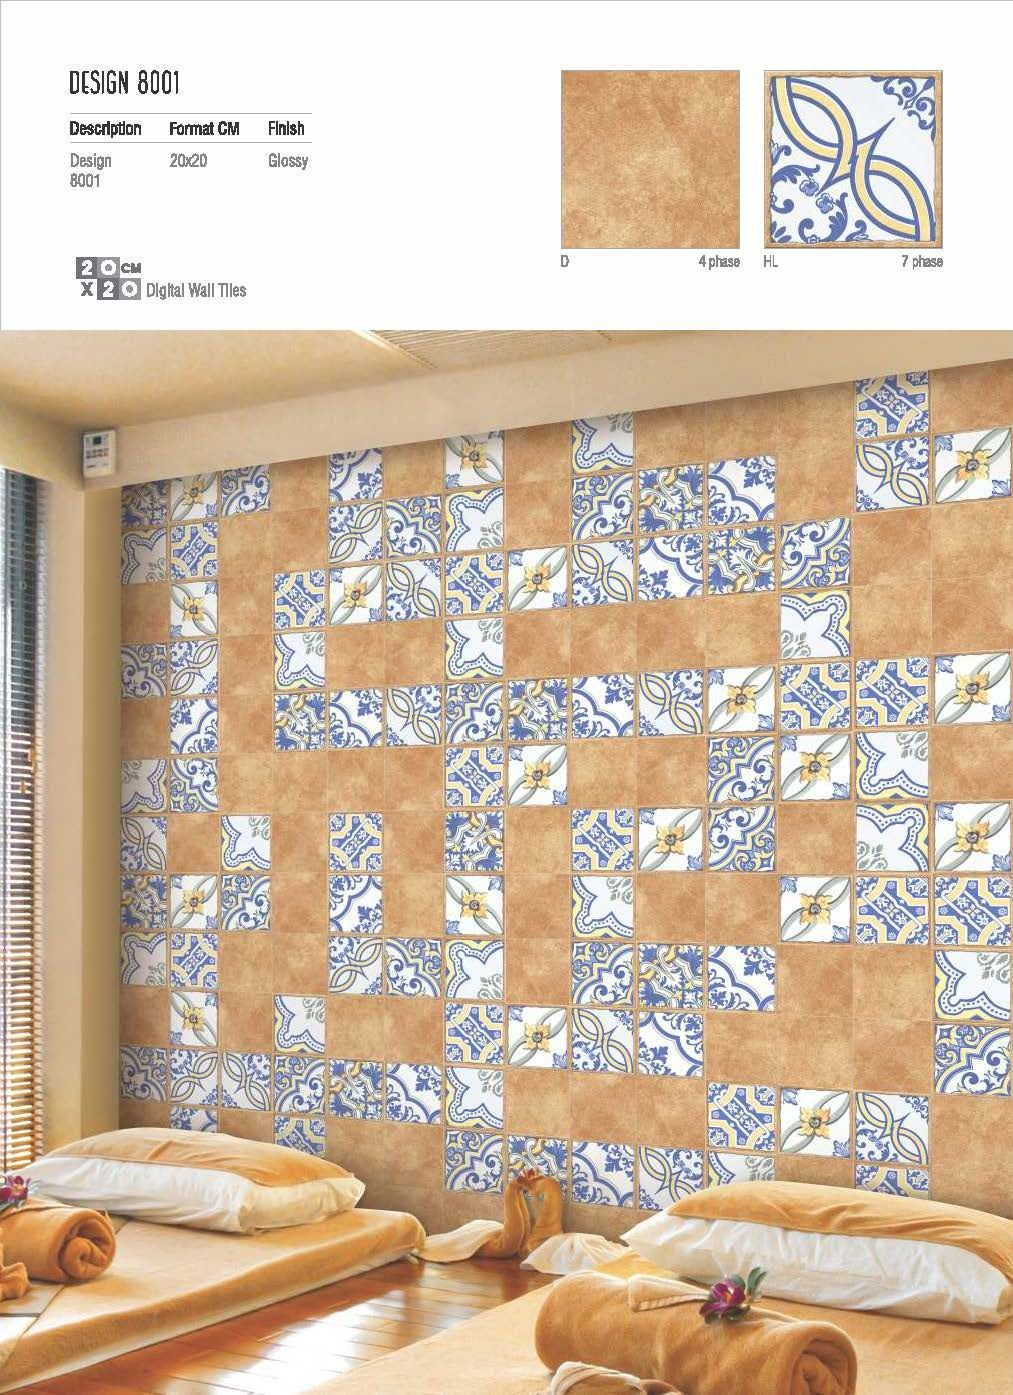 Manufacturers of 200 x 200mm digital wall tiles 300 x 600mm digital millennium overseas are various types of 200 x digital wall tiles digital wall tiles manufacturers exporters and suppliers in india poland taiwan dailygadgetfo Choice Image